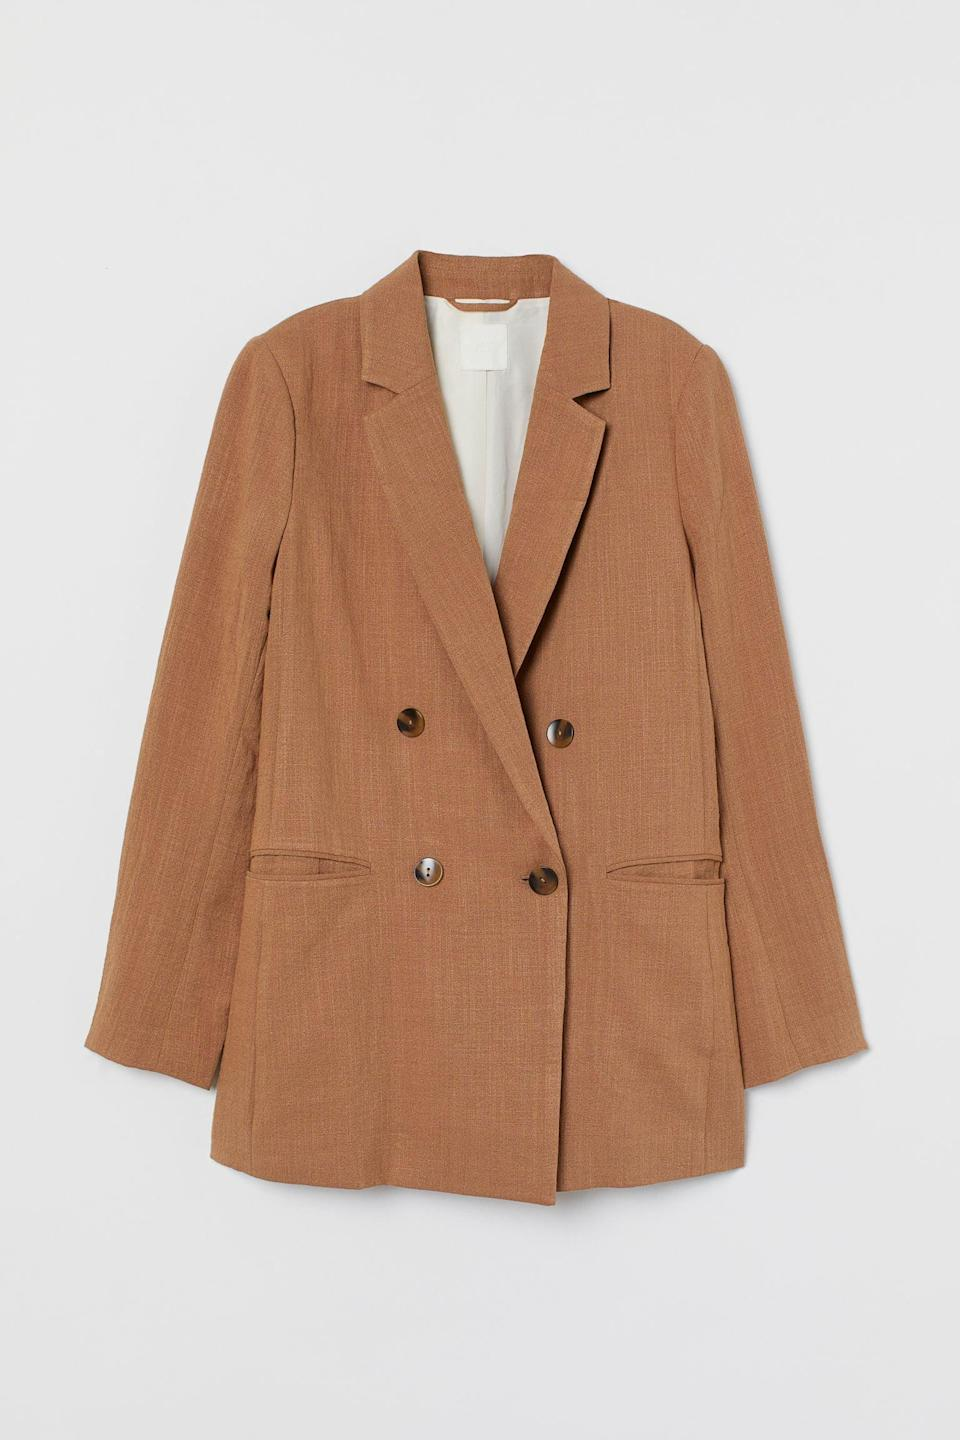 <p>Be daring and style this <span>H&amp;M Double-Breasted Blazer</span> ($28, originally $35) as a top over a delicate slip skirt.</p>